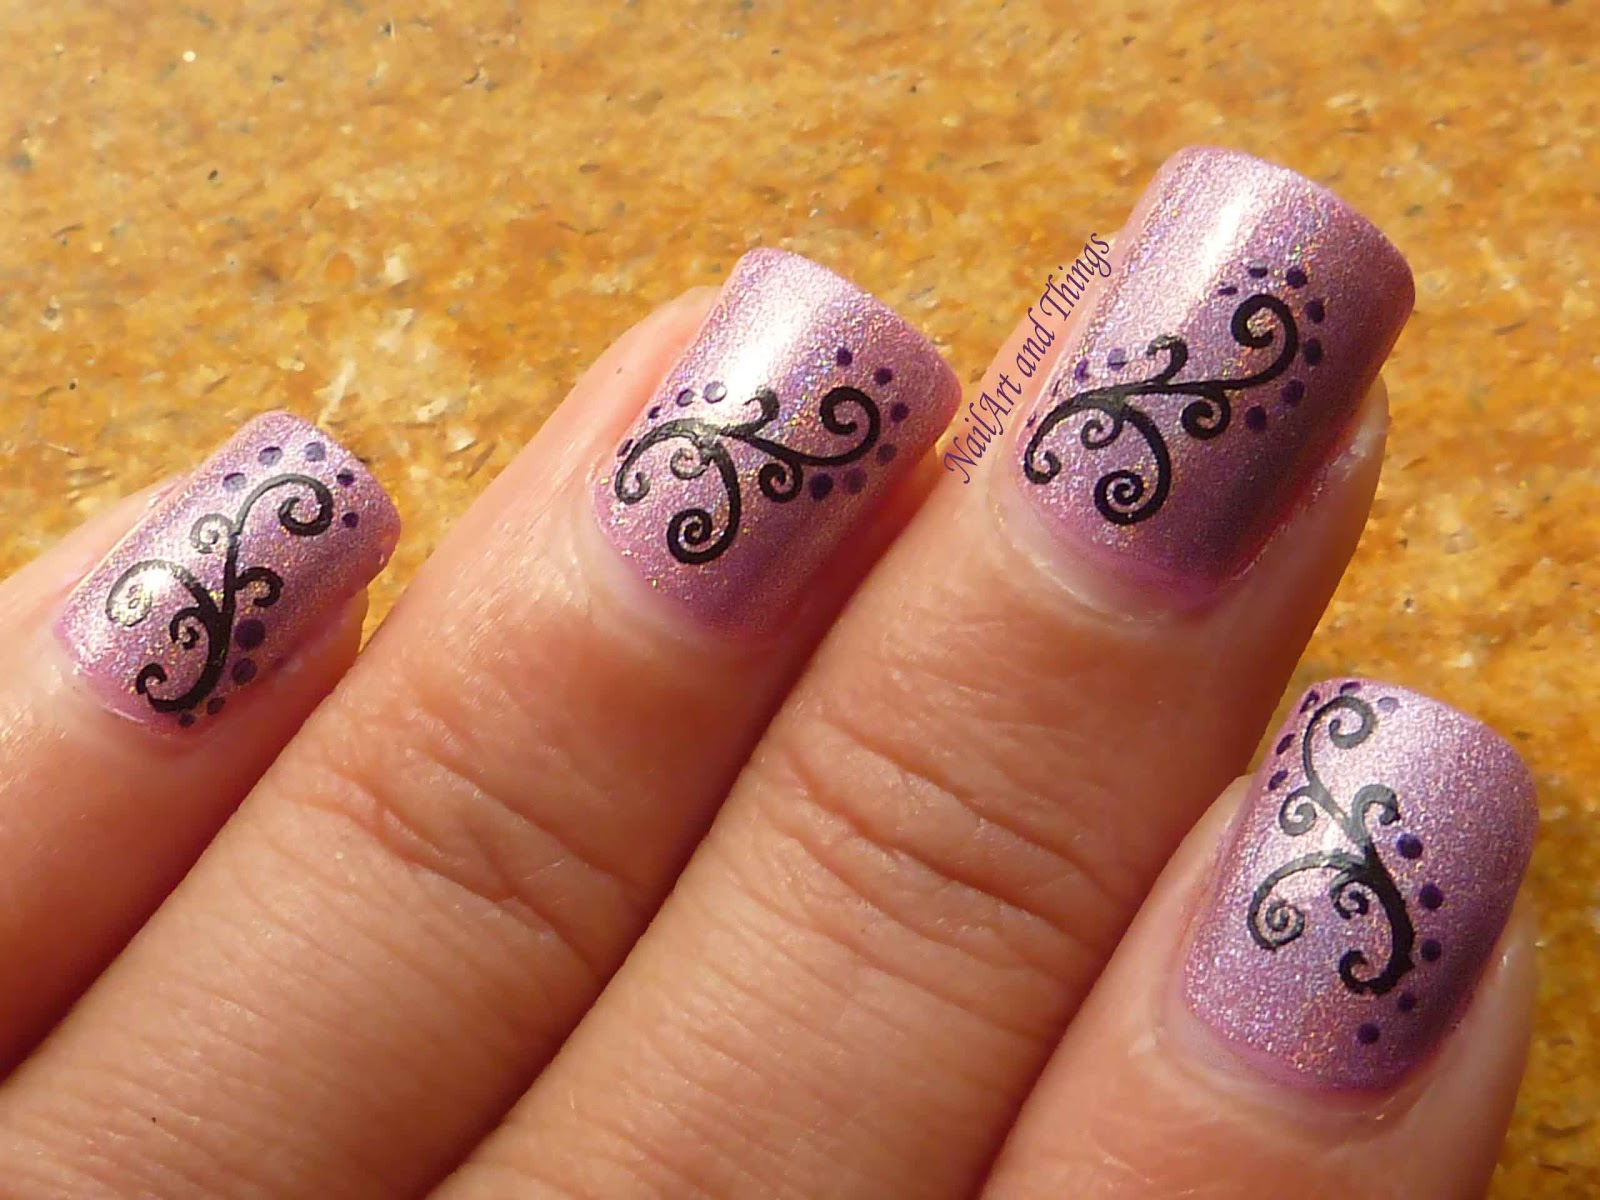 Amazing Nail Art, Nail Polish Designs amp; Patterns : Nail Art